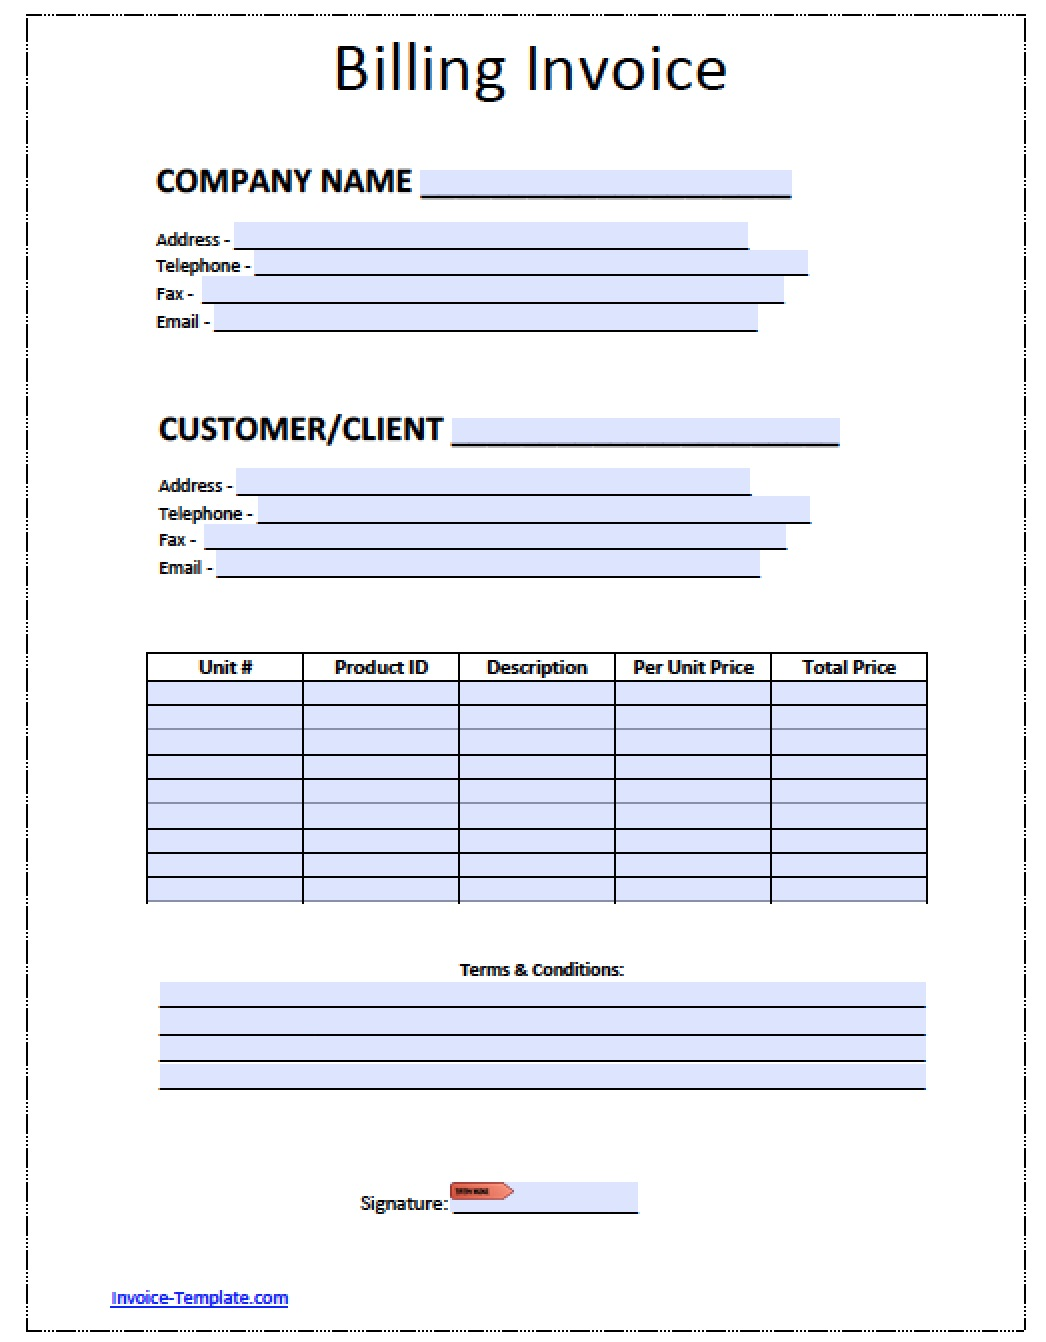 Pigbrotherus  Nice Billing Invoice Invoices Faq U Cloudflare Support Billing  With Foxy Free Billing Invoice Template  Excel  Pdf  Word Doc  Billing With Beautiful Excel Invoice Form Also Vtiger Invoice Template In Addition Making An Invoice In Word And Invoice Template Nz As Well As Intercompany Invoices Additionally Billing Invoices Free Printable From Happytomco With Pigbrotherus  Foxy Billing Invoice Invoices Faq U Cloudflare Support Billing  With Beautiful Free Billing Invoice Template  Excel  Pdf  Word Doc  Billing And Nice Excel Invoice Form Also Vtiger Invoice Template In Addition Making An Invoice In Word From Happytomco